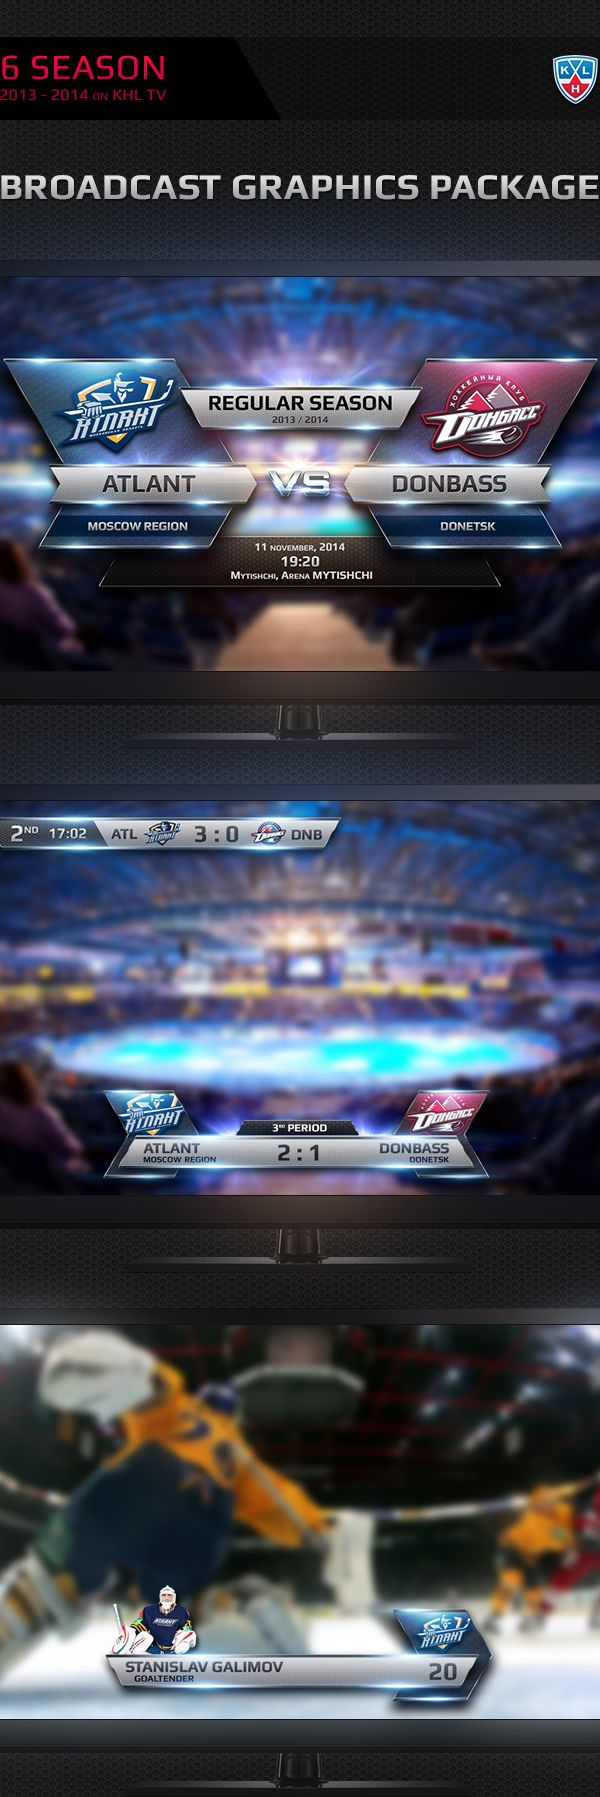 KHL Broadcast Graphics 2013-2014 by Vitaly Cherkasov, via Behance